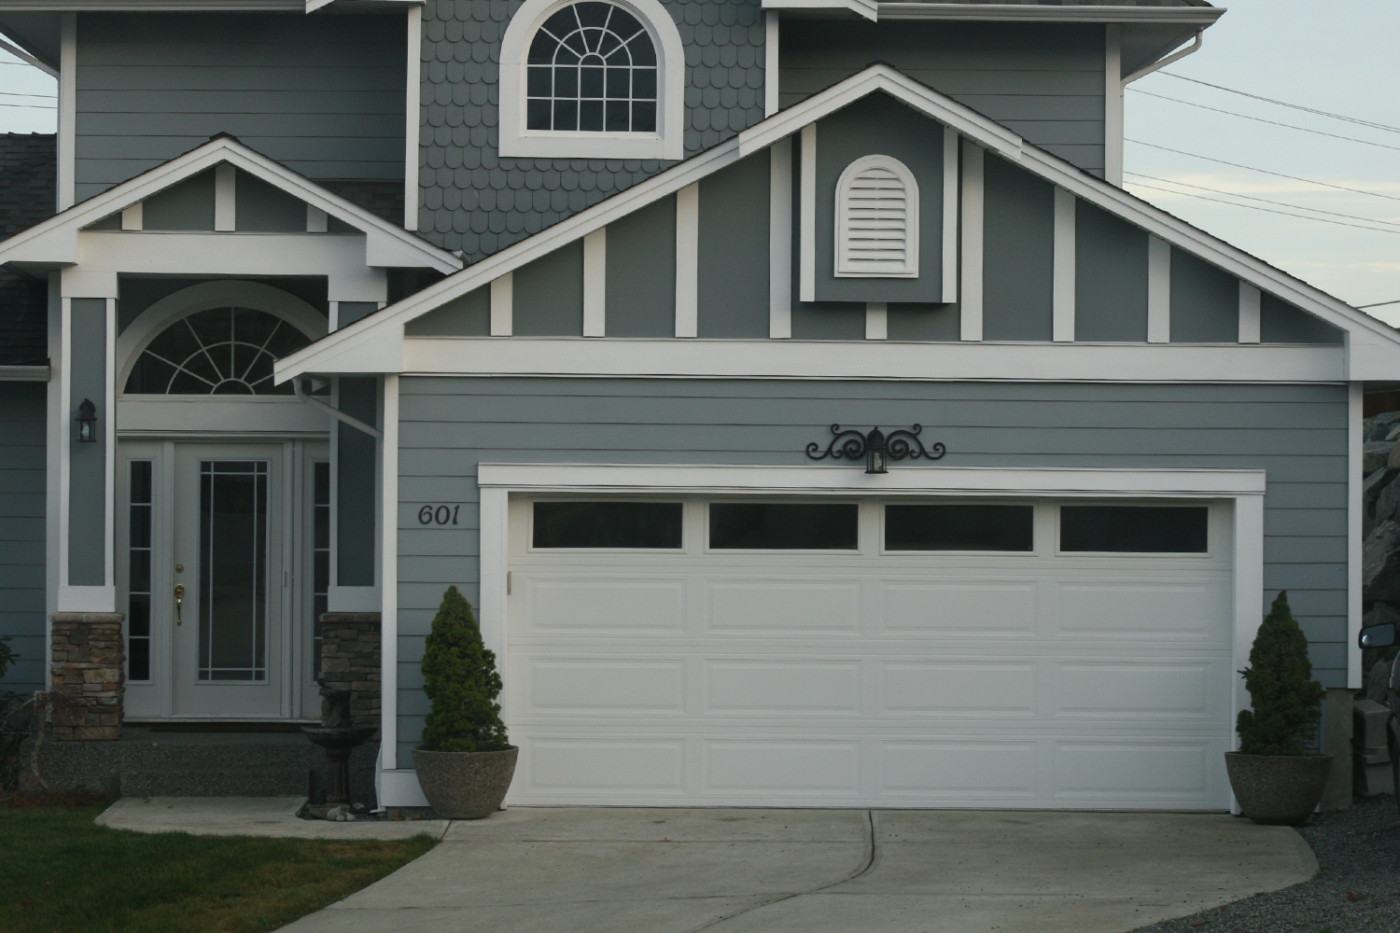 Garage Door Repair & Restore | Realtors - Carport Conversions on door from garage into house, door from garage to house, garage entry door to house,